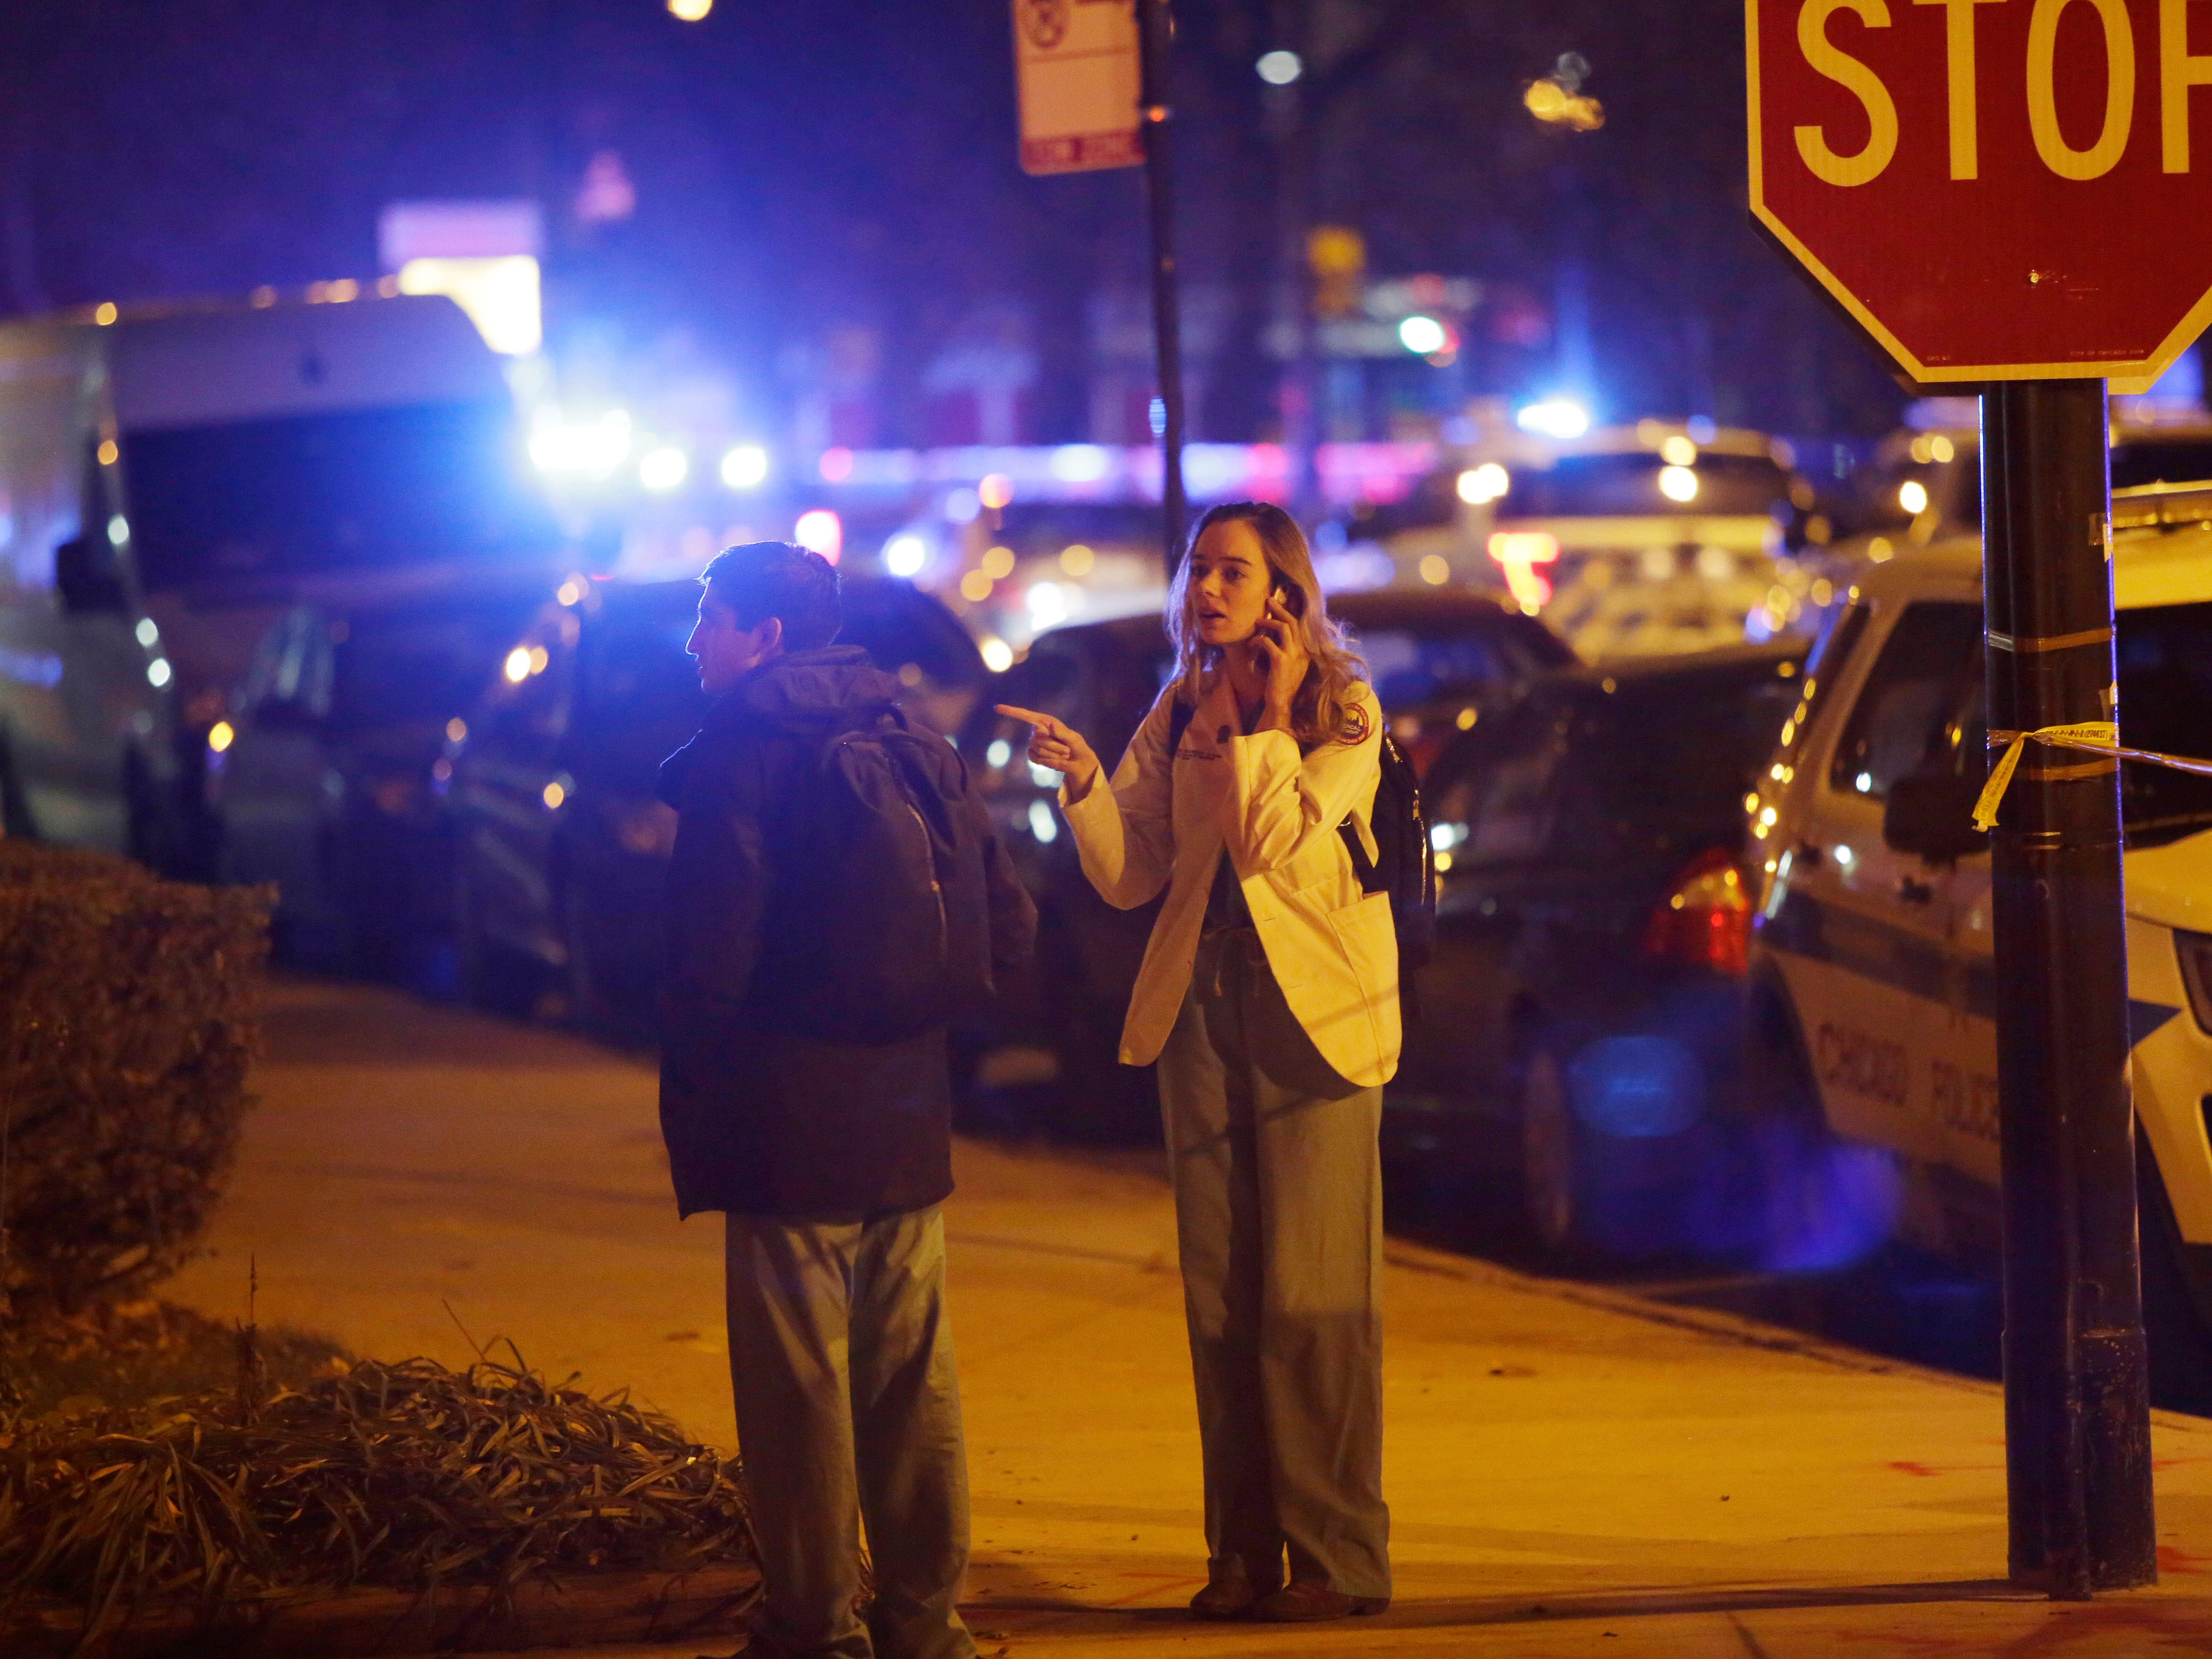 Mercy Hospital workers stand outside the hospital after a gunman shot multiple people on Nov. 19, 2018 in Chicago.